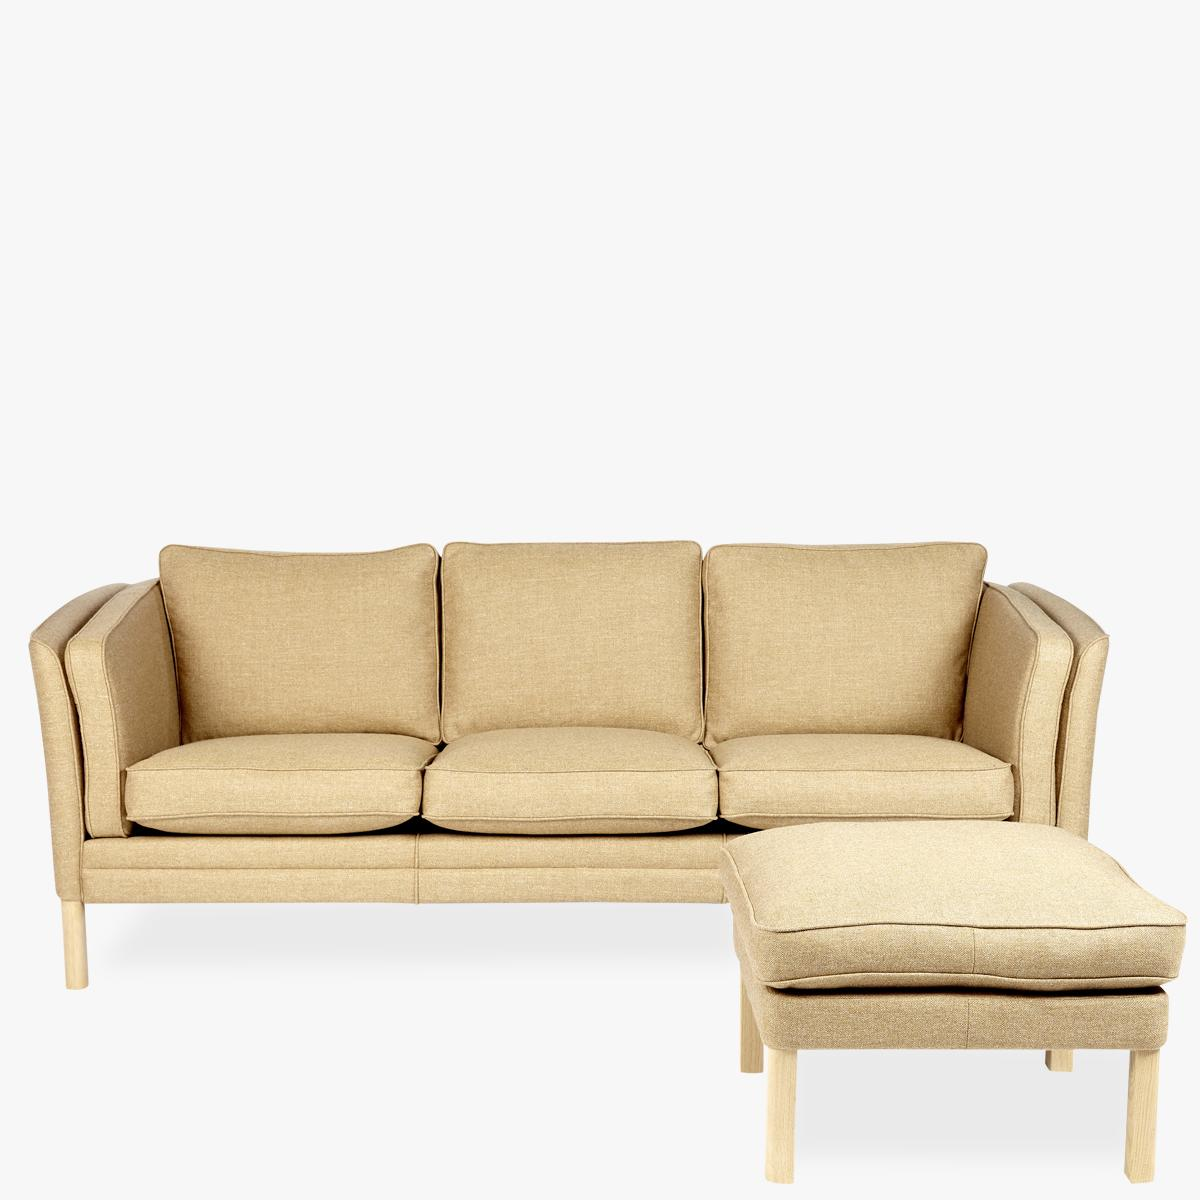 Klassik-Sofa-Fabric-Tan-Front-Footstool-1200